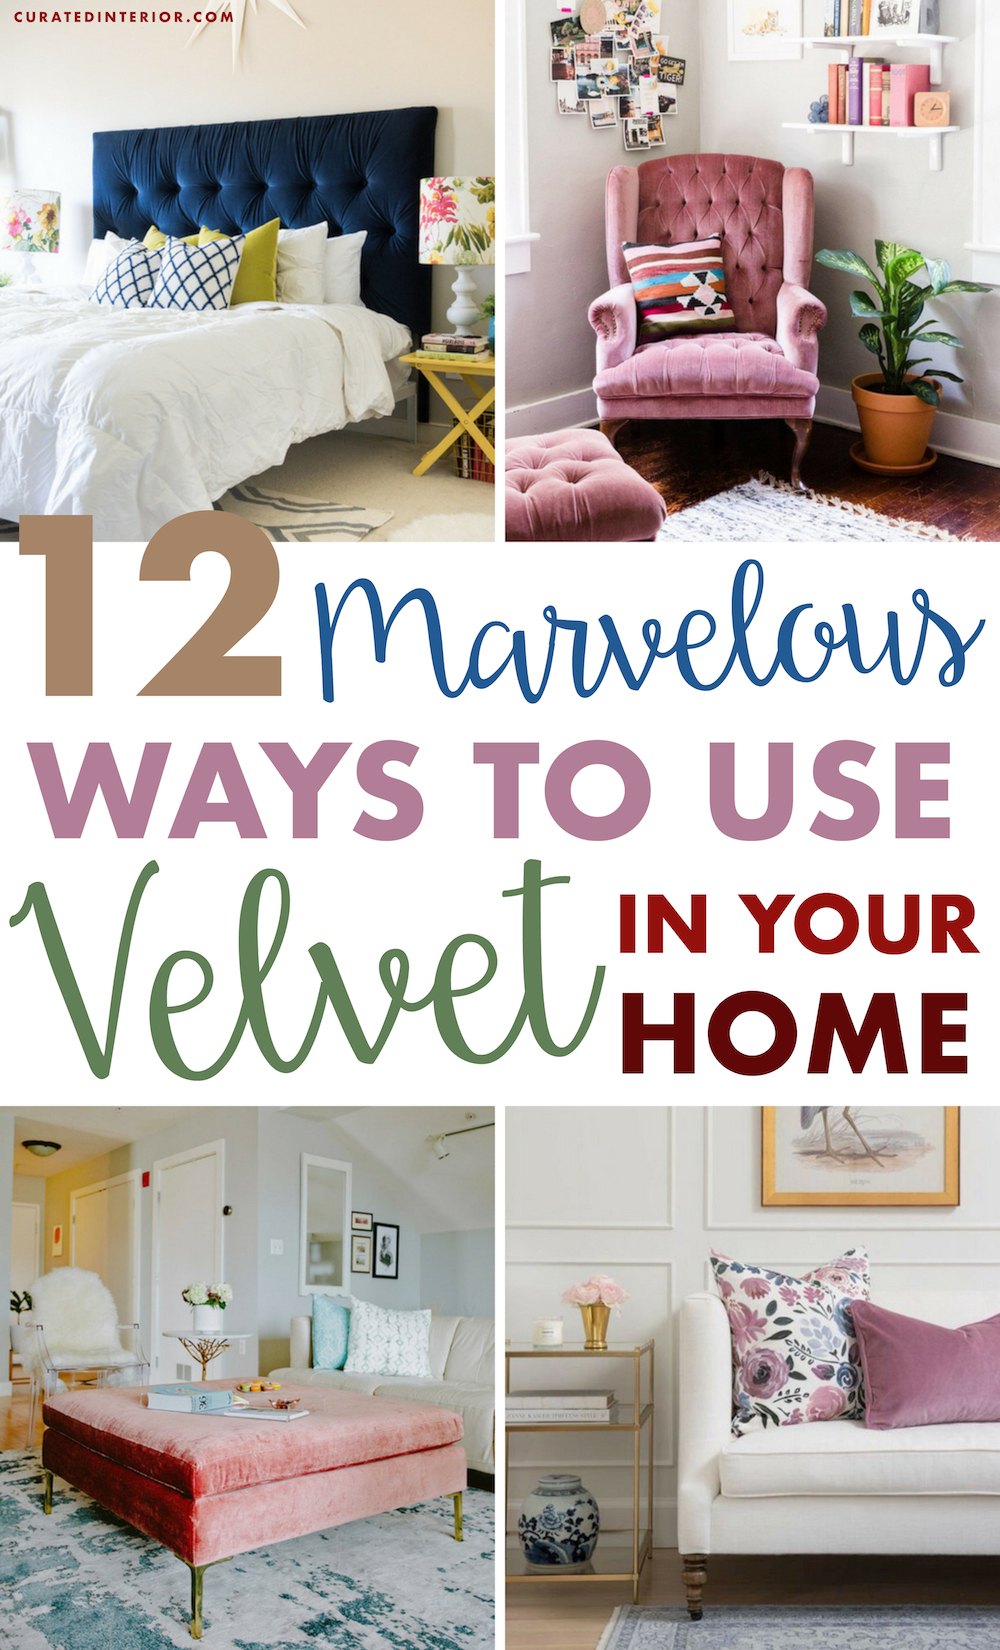 How To Decorate With Velvet In The Home